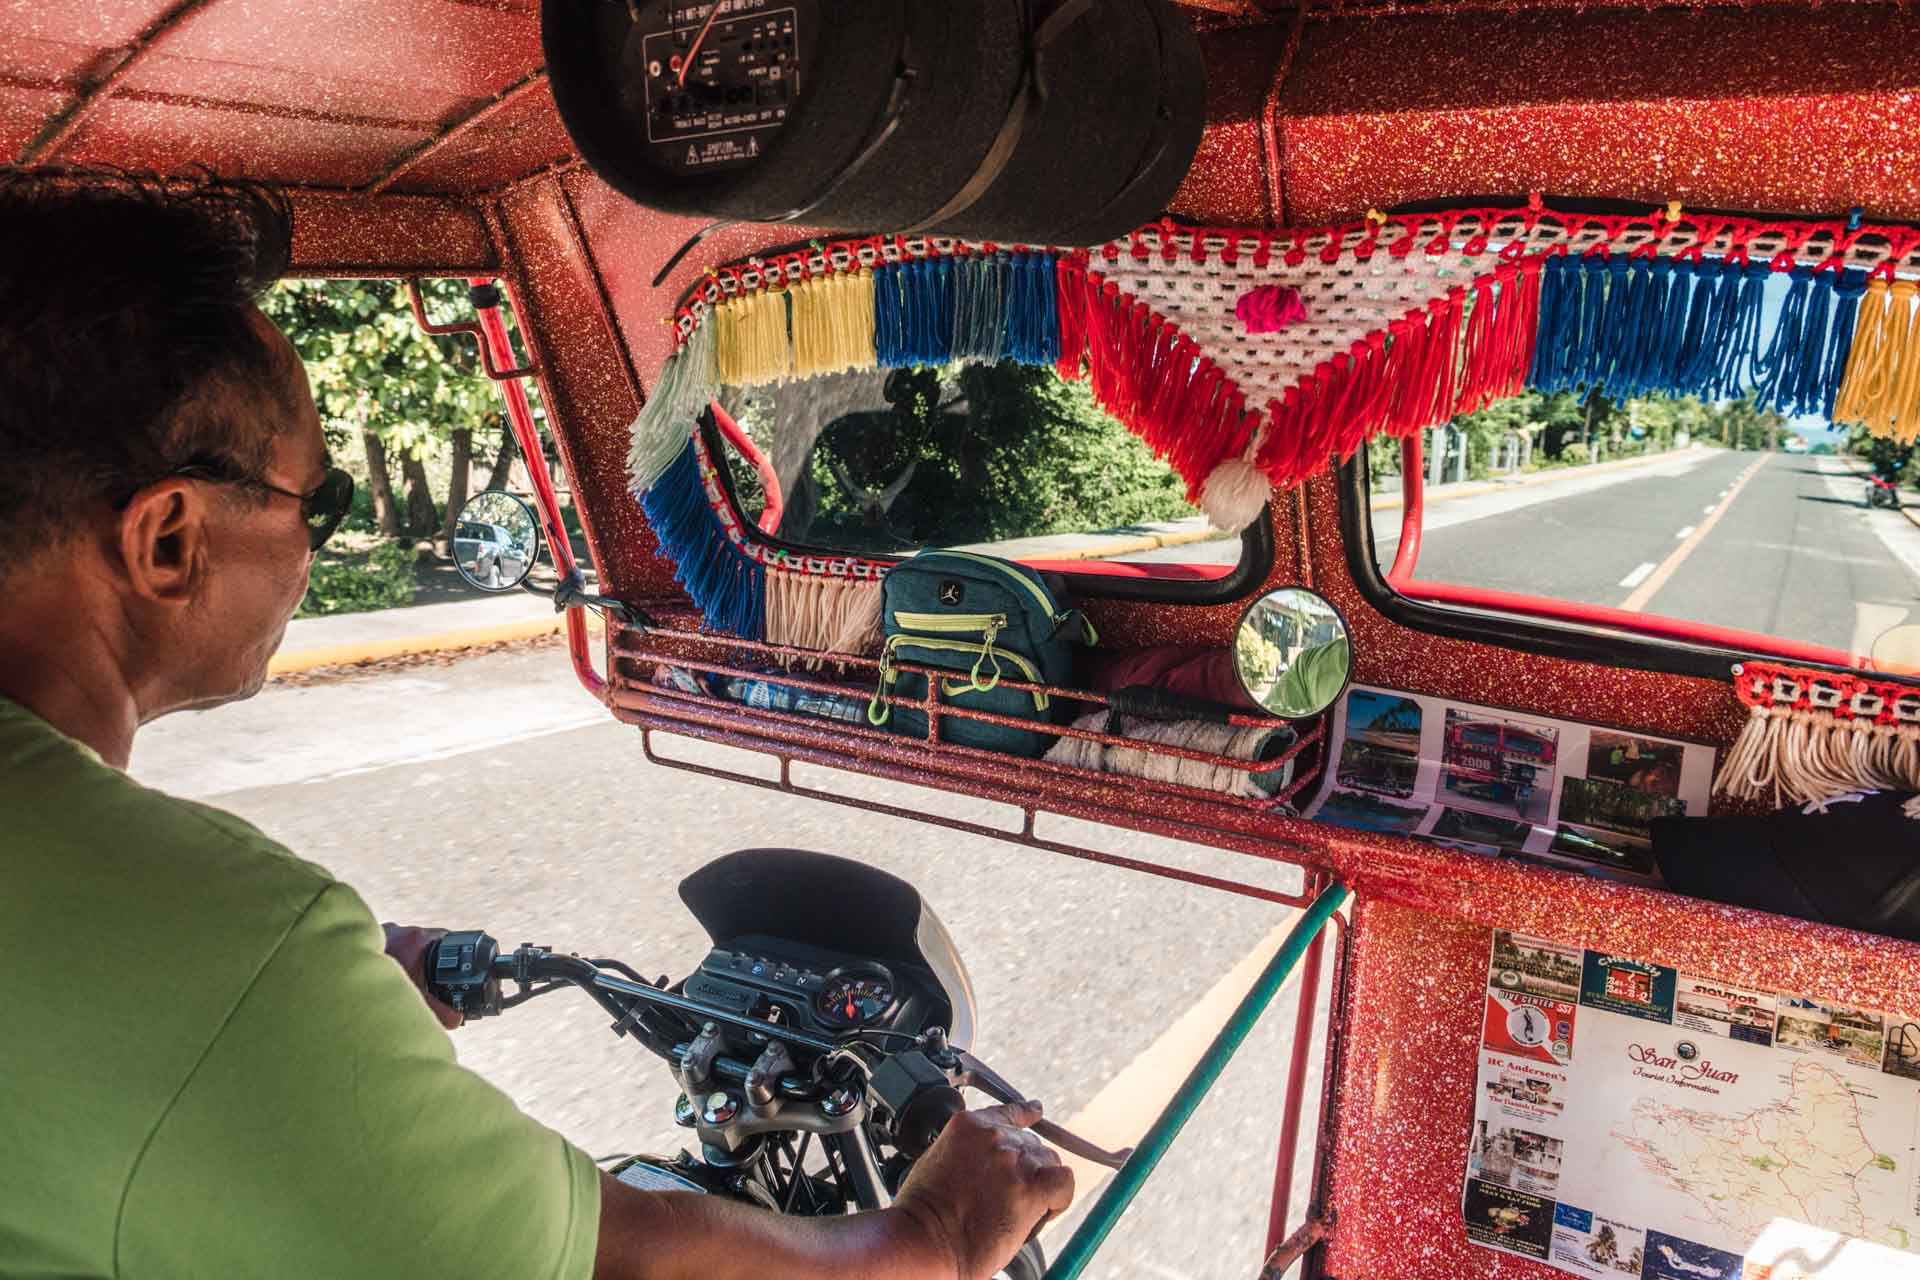 Tricycle in Siquijor, the Philippines